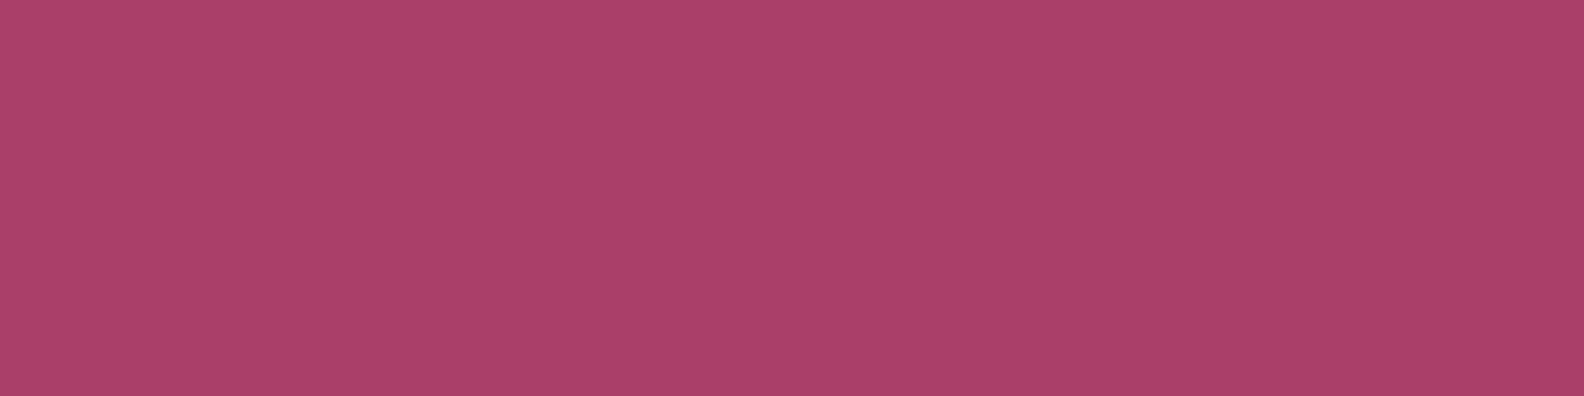 1584x396 Medium Ruby Solid Color Background